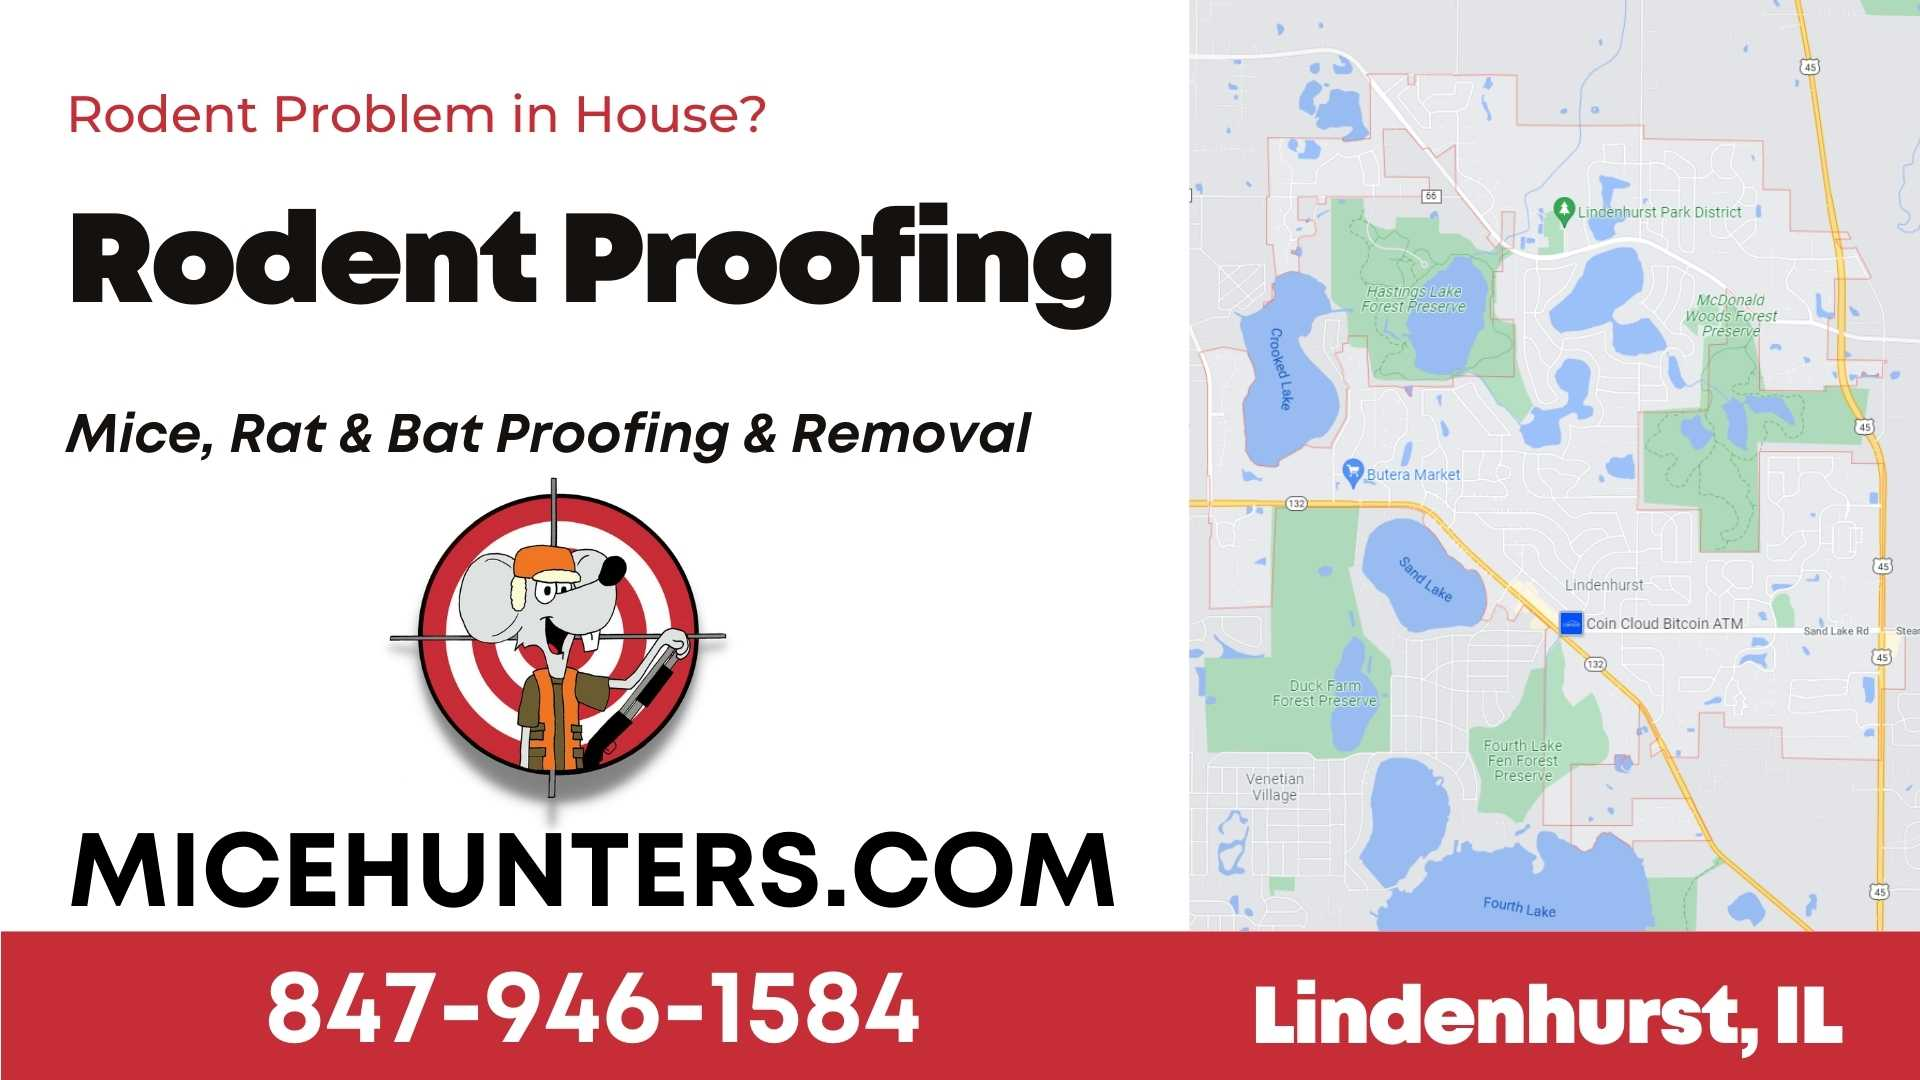 Lindenhurst Rodent and Mice Proofing Exterminator Near Me